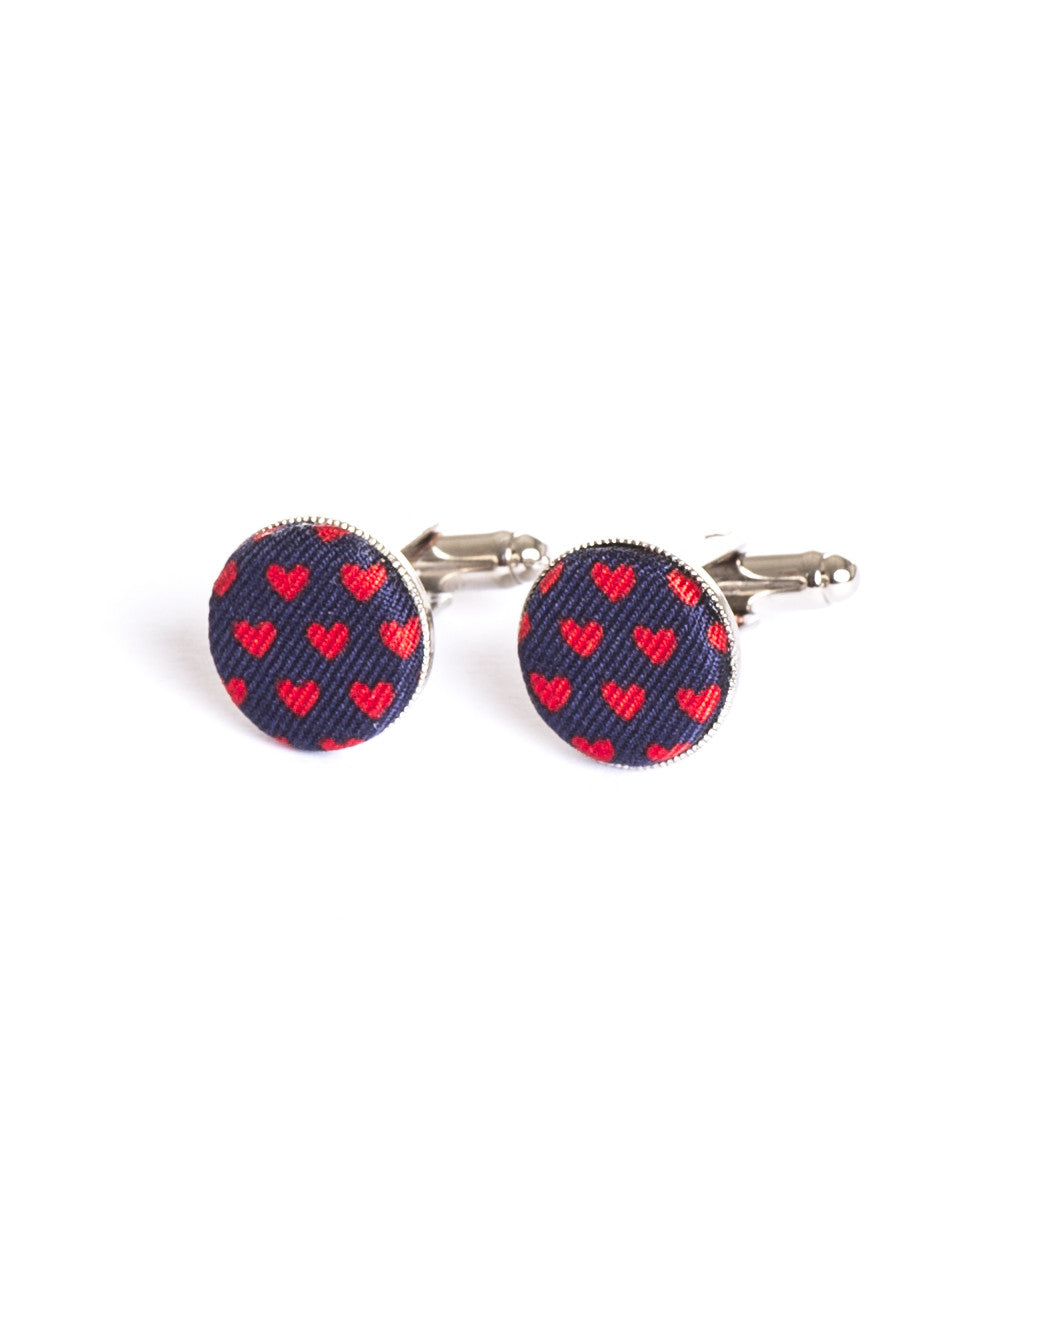 BLUE RED HEART CUFFLINKS